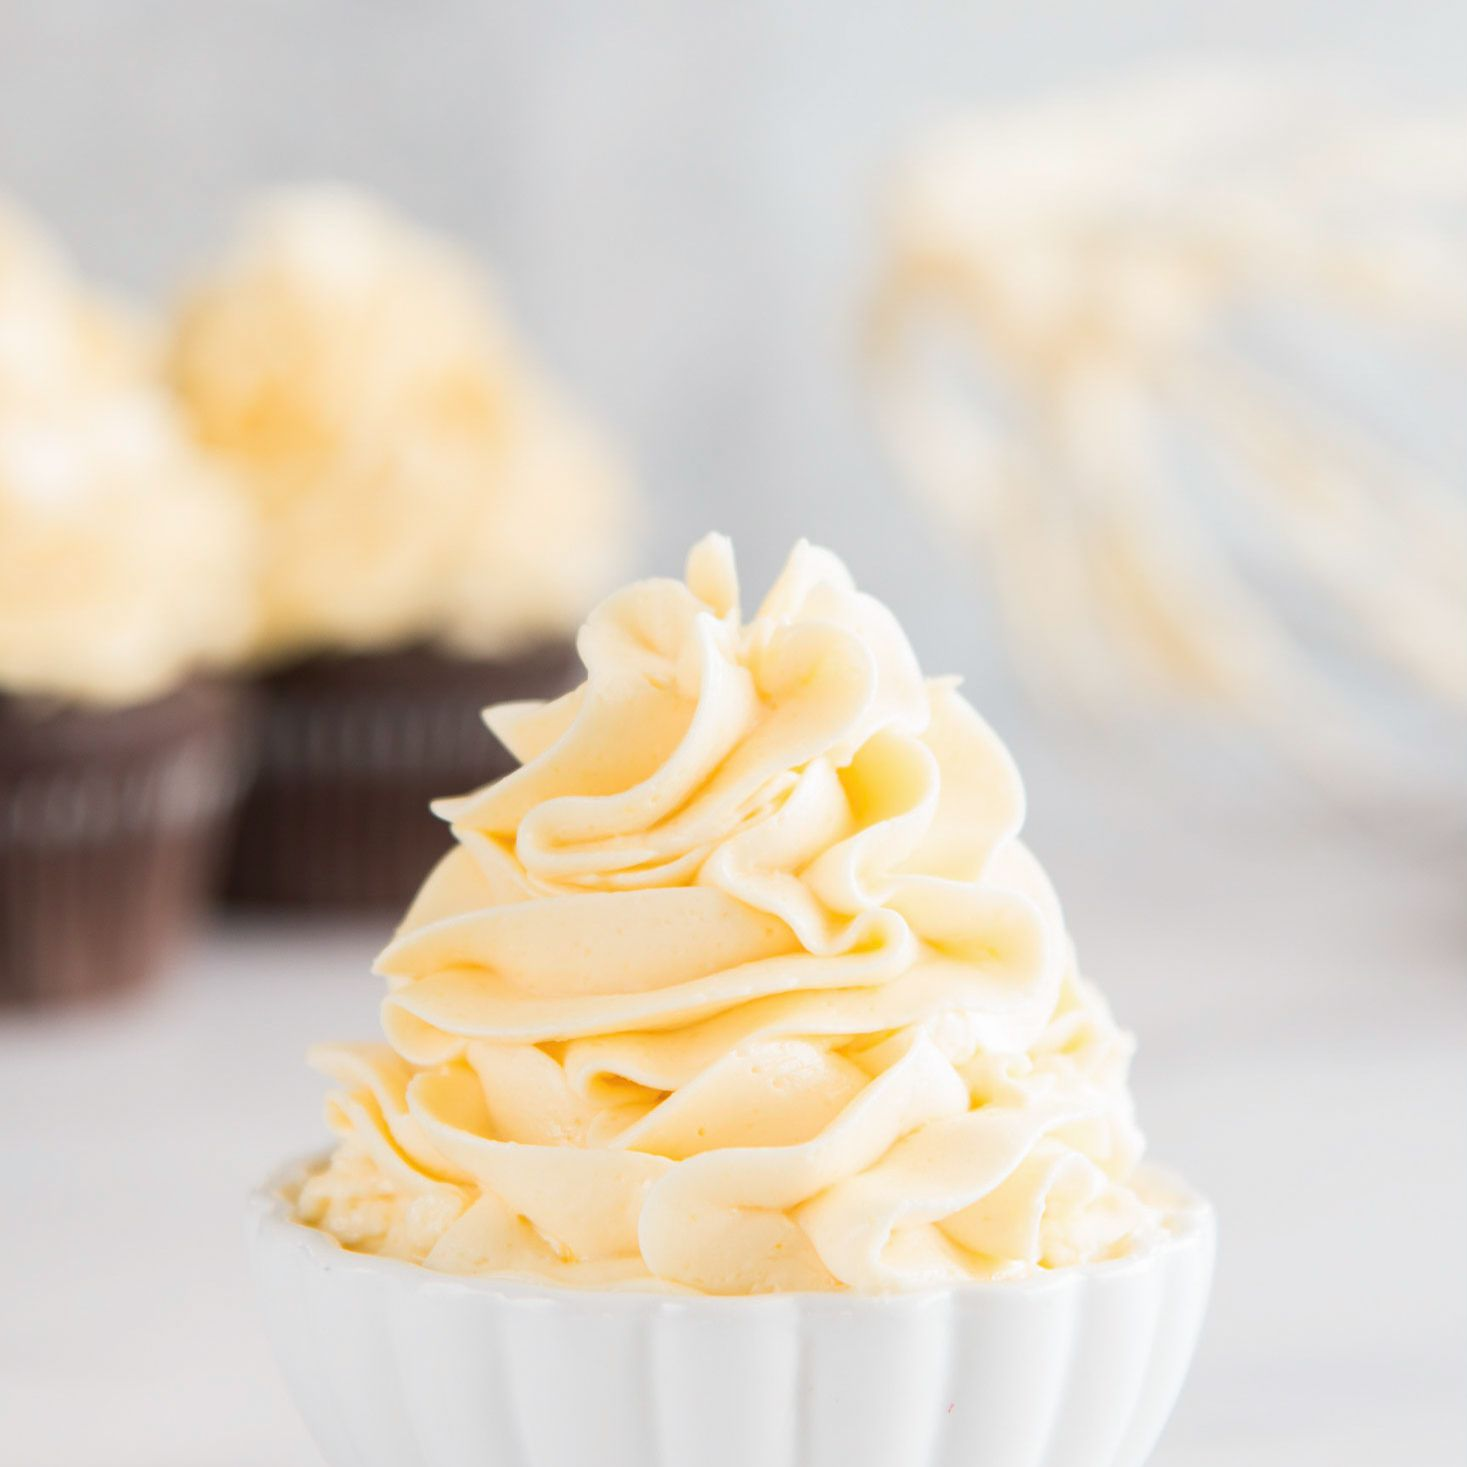 French meringue buttercream piled high in a small bowl.